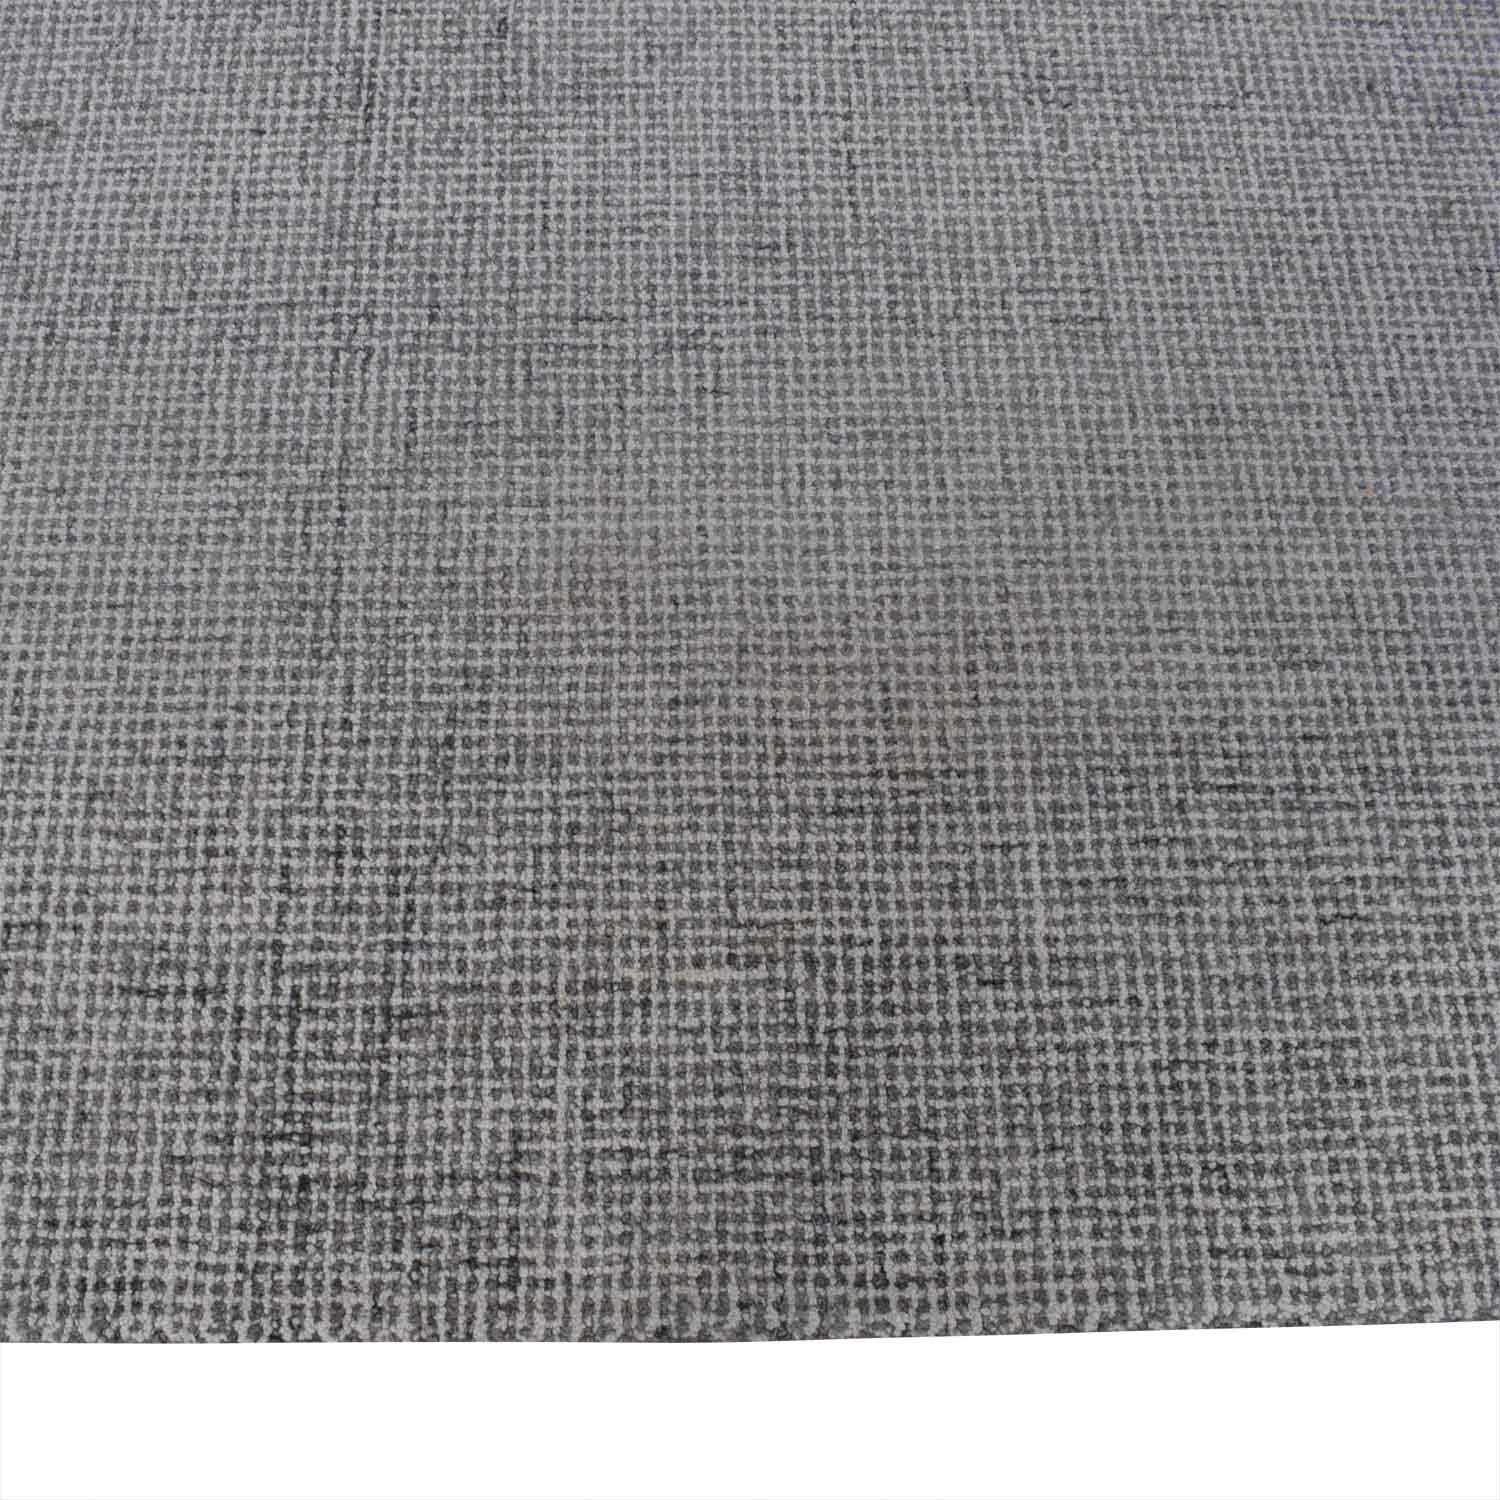 RizzyHome Rizzy Home Brindleton Area Rug second hand